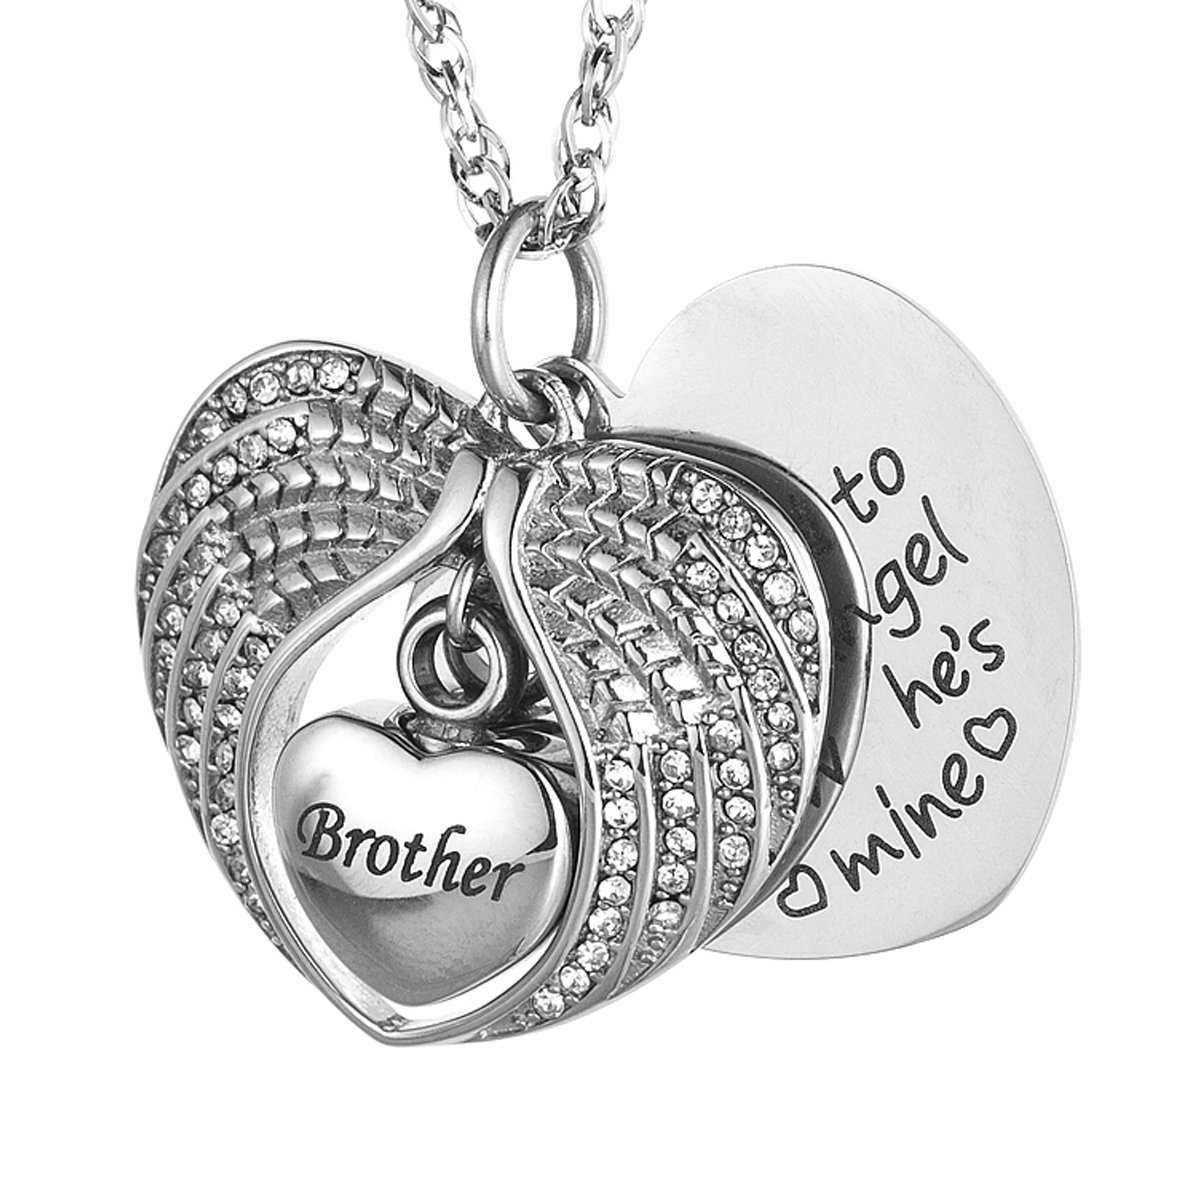 IMEIM Angel Wings Cremation Urn Memorial Necklace for Ashes Stainless Steel Pendant Unique Small Jewelry Special Art Store Memories Spiritual Eternity